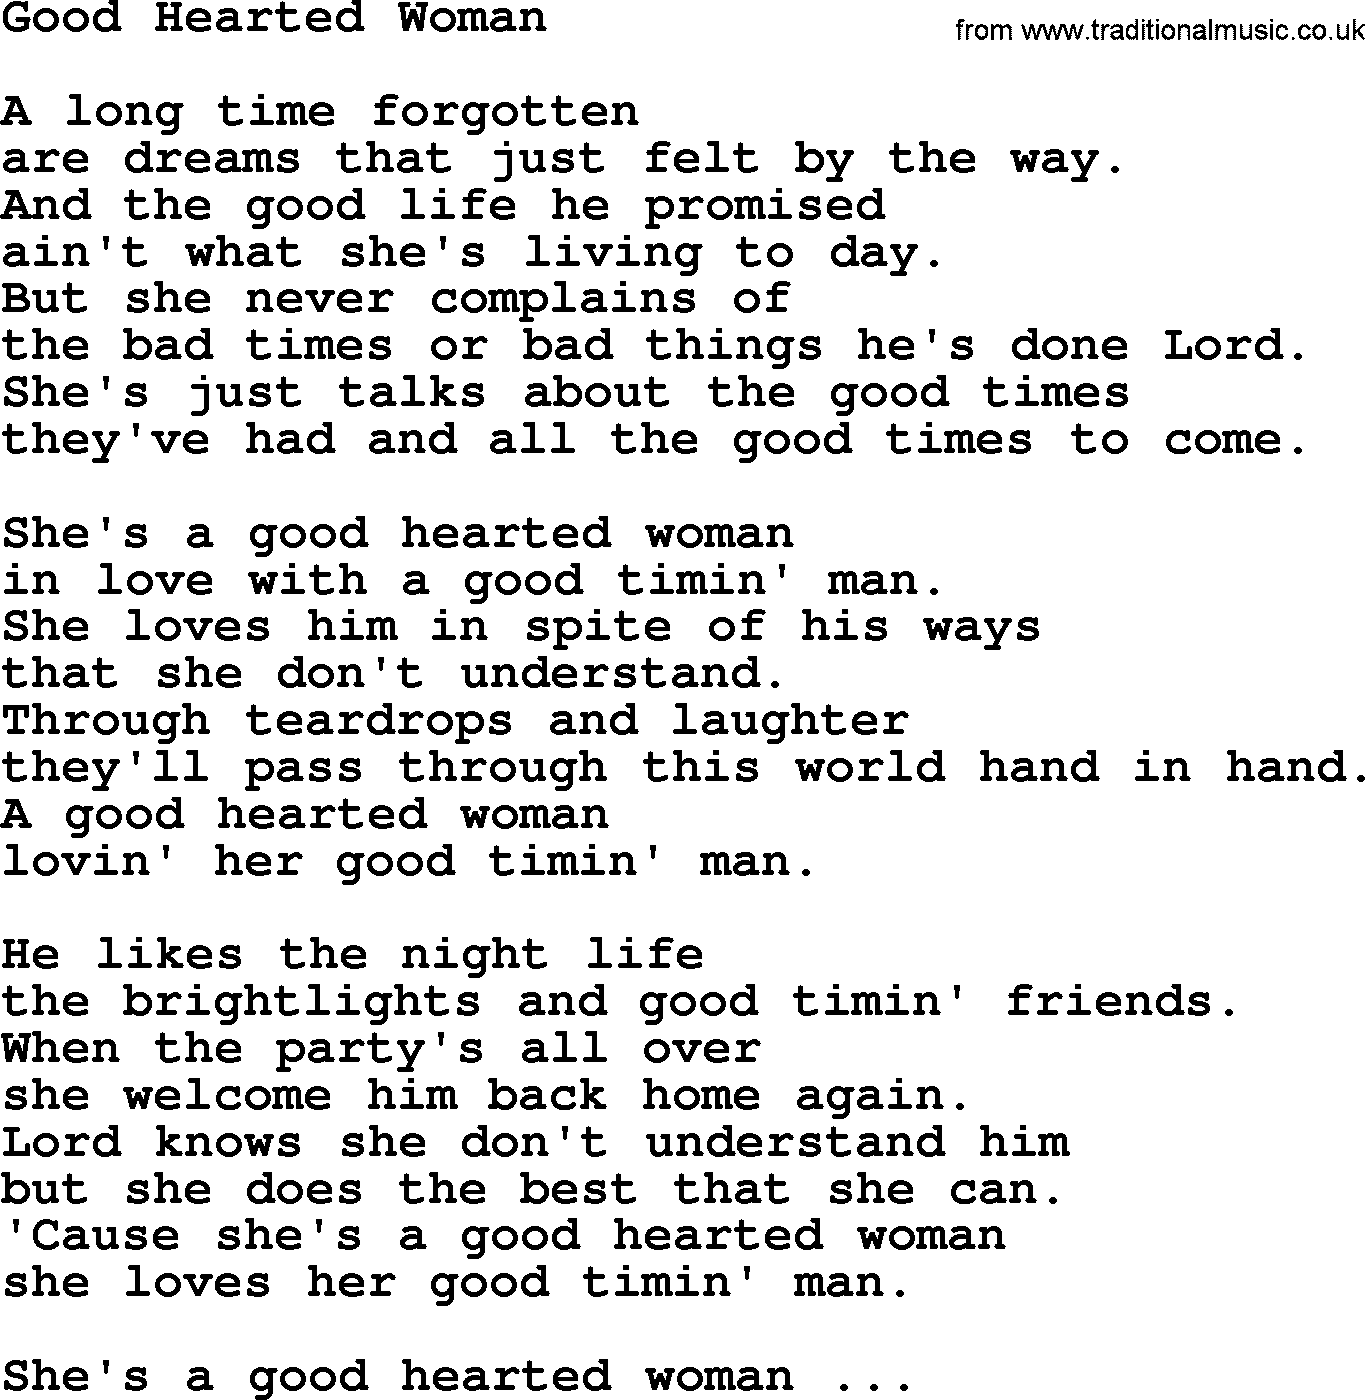 Songs about a good woman